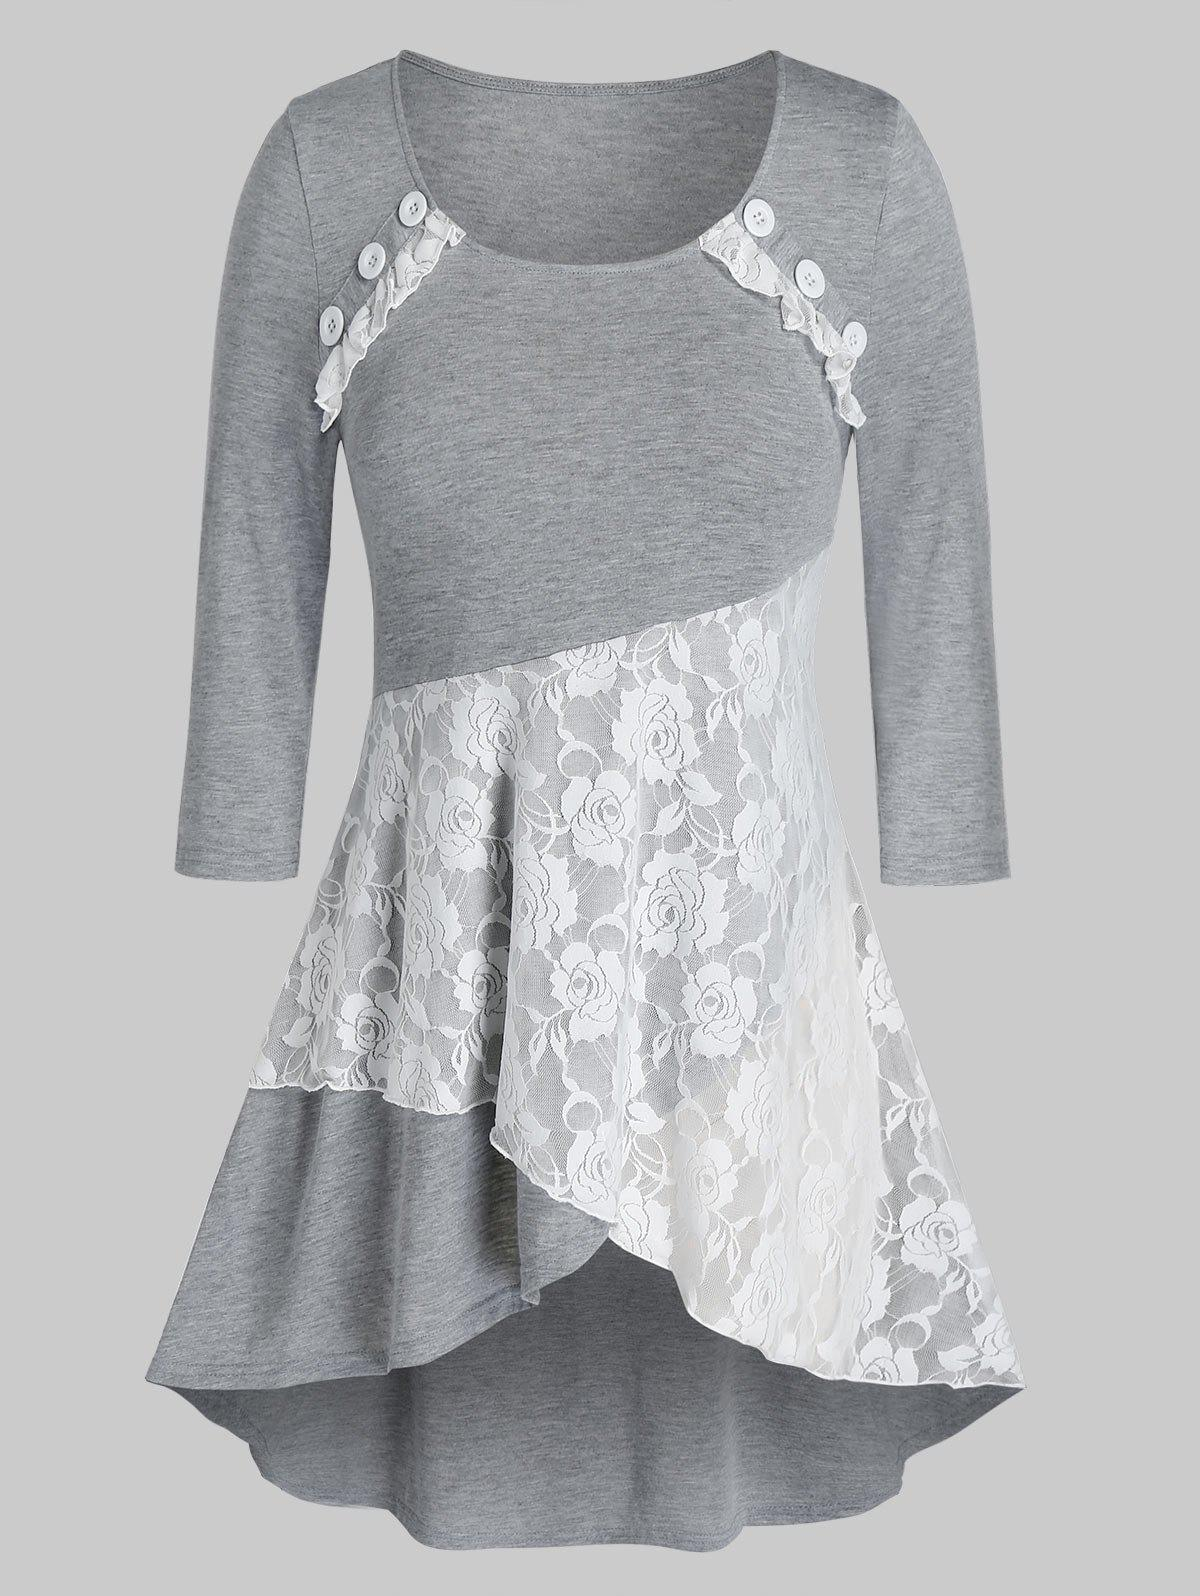 Plus Size Floral Lace Button Layered Top - GRAY 4X